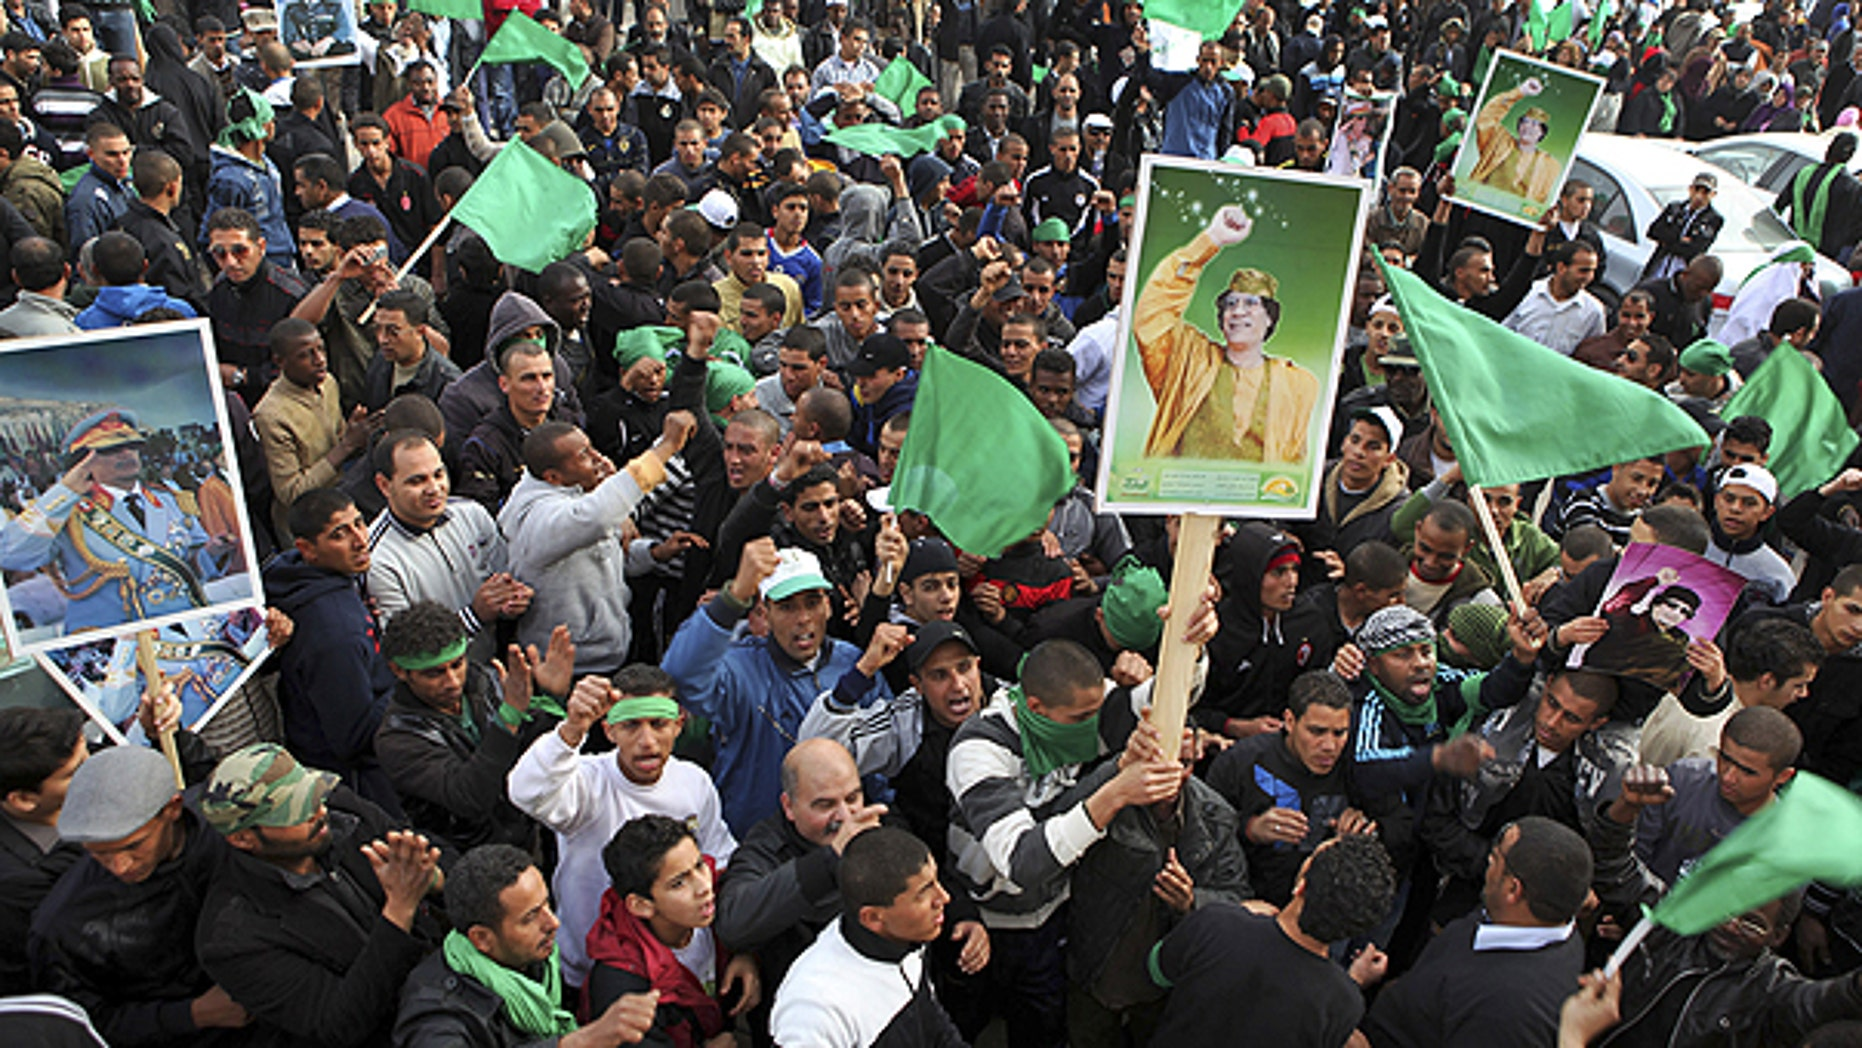 Feb. 18: Pro-Qaddafi supporters gather in Green Square after traditional Friday prayers in Tripoli, Libya.